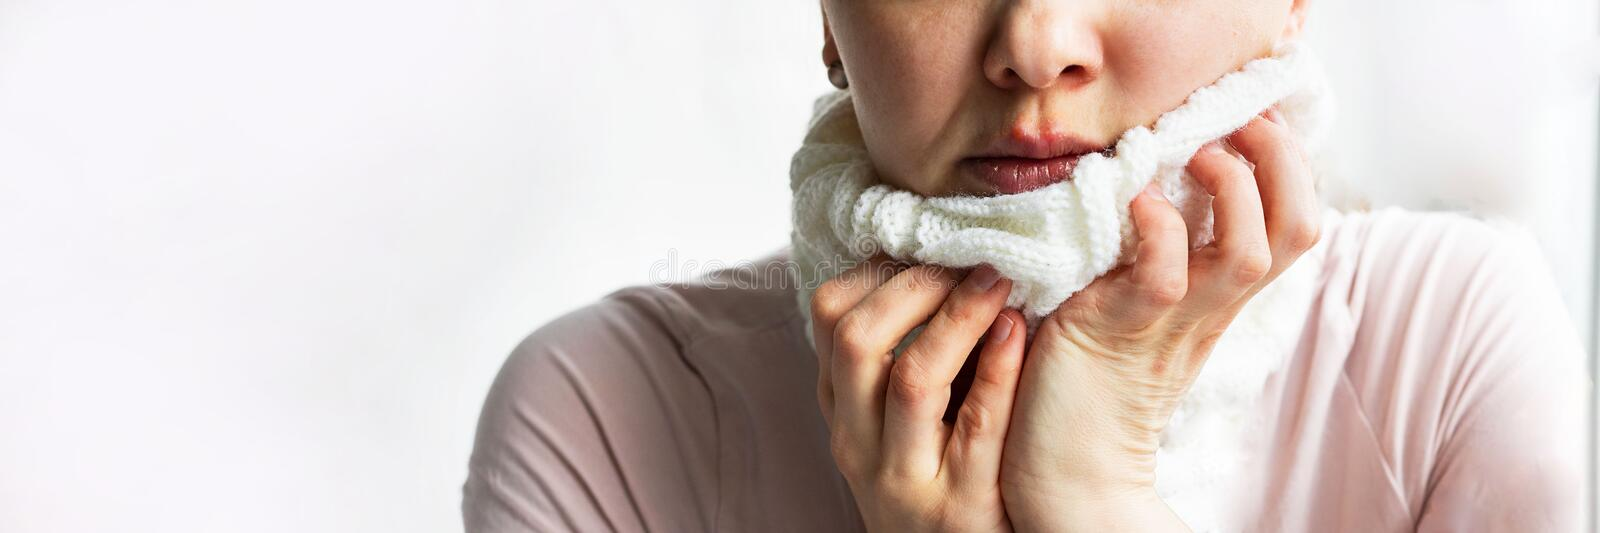 Lower part part of woman face with Red bubbles of virus herpes on her lips she tries to hide it under white knitted neckwarmer, royalty free stock photos